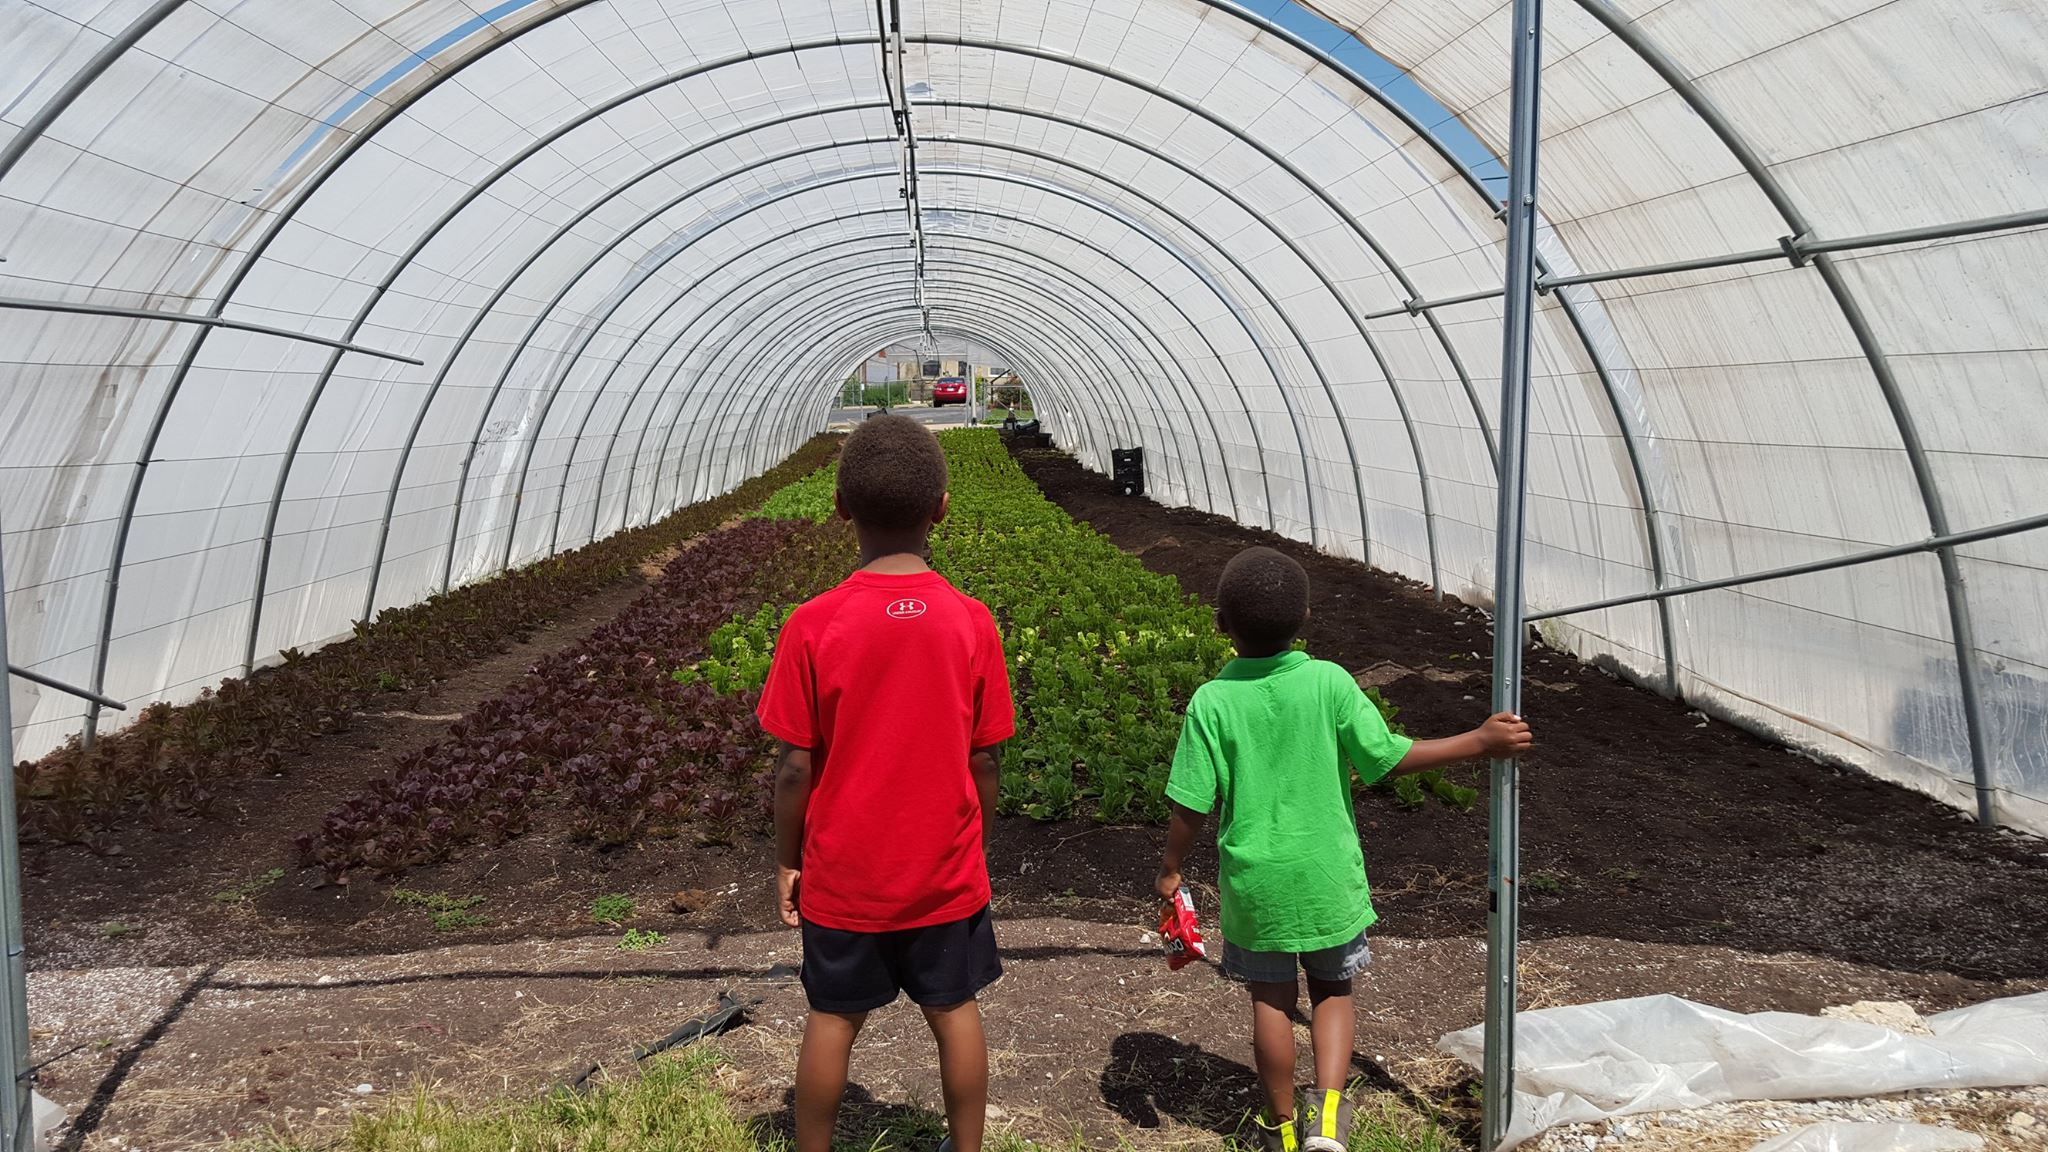 Food as Liberation: How Black Food Sovereignty is Tied to the Prison Abolition Movement